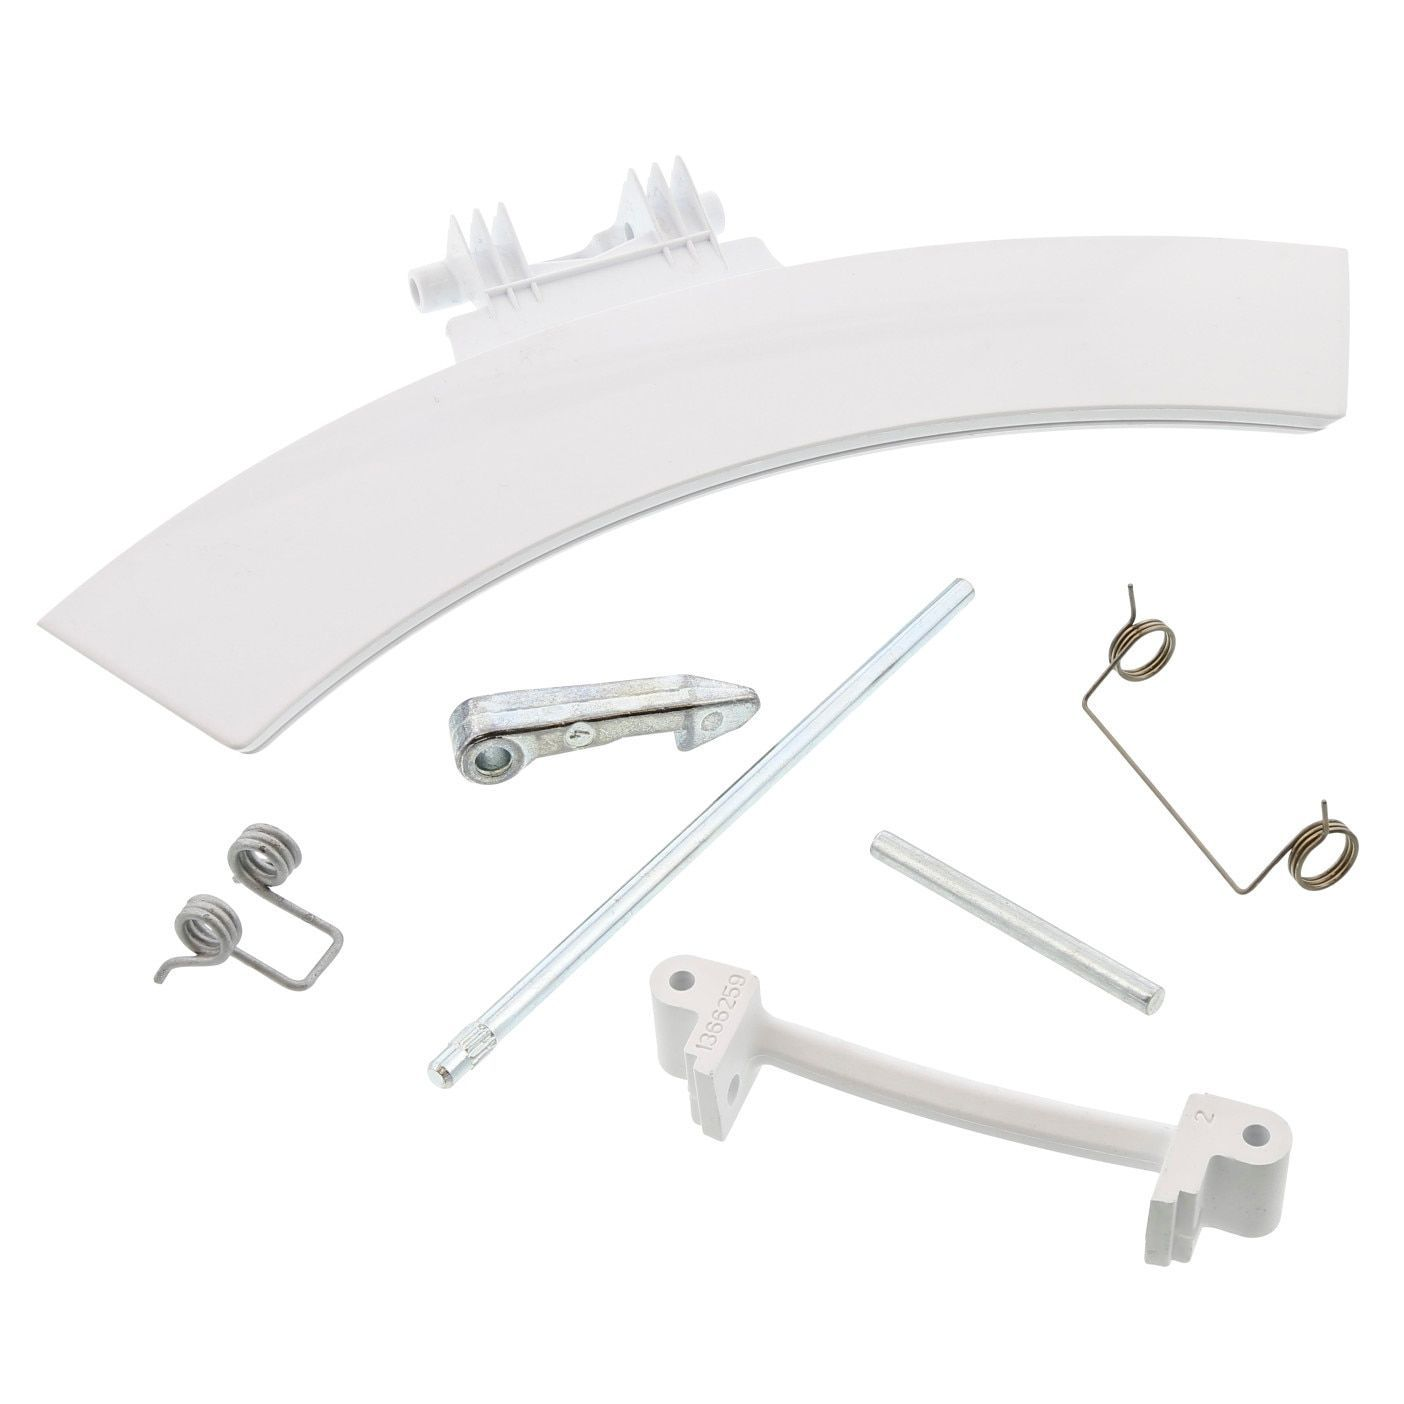 Tumble Dryer Door Handle Kit for Electrolux - 4055248019 AEG / Electrolux / Zanussi